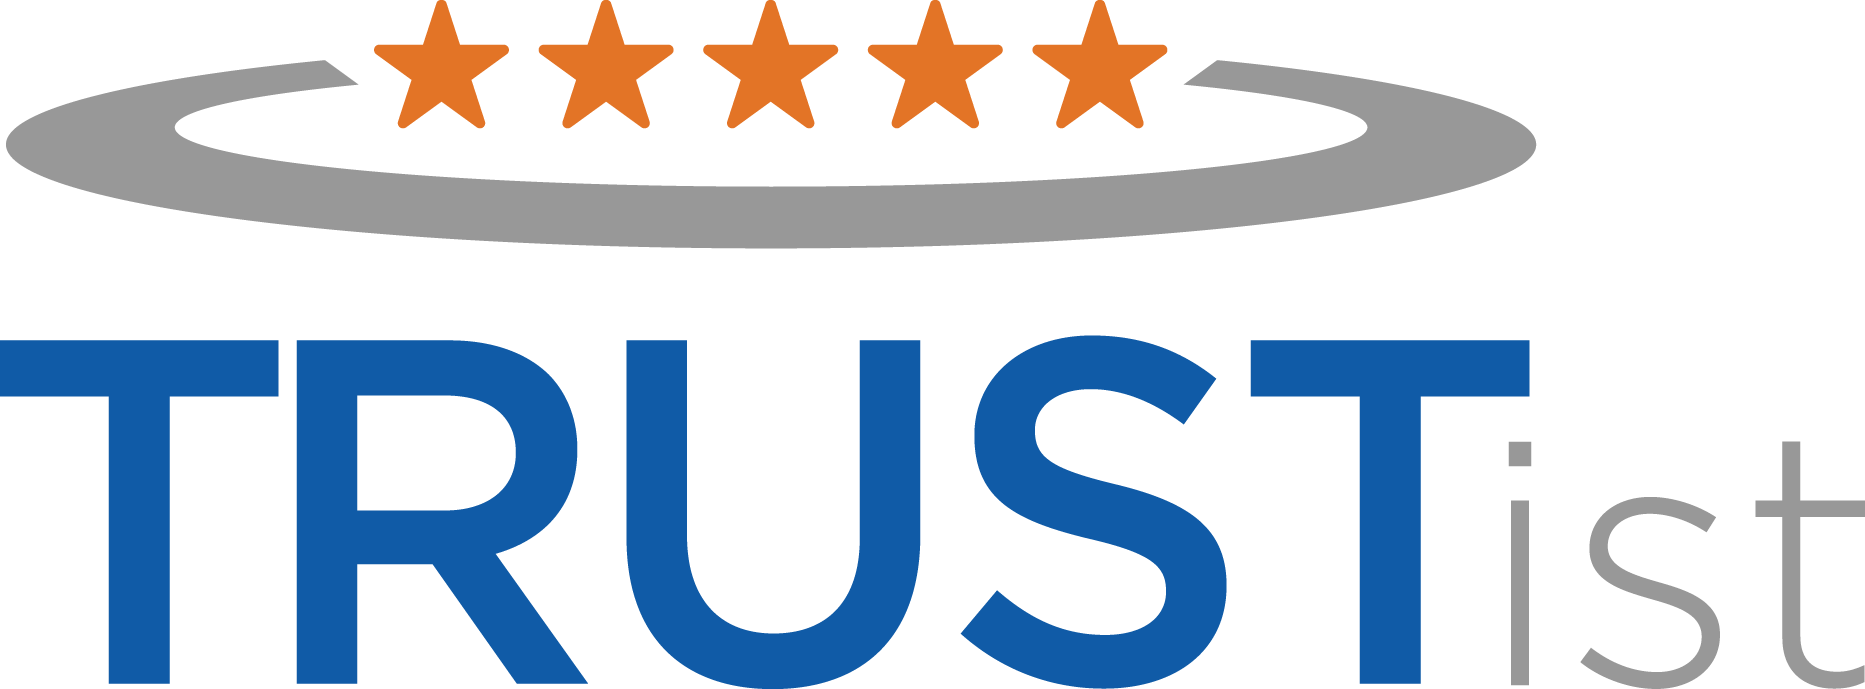 5-star-ciustomer-reviews-building-services-hammersmith